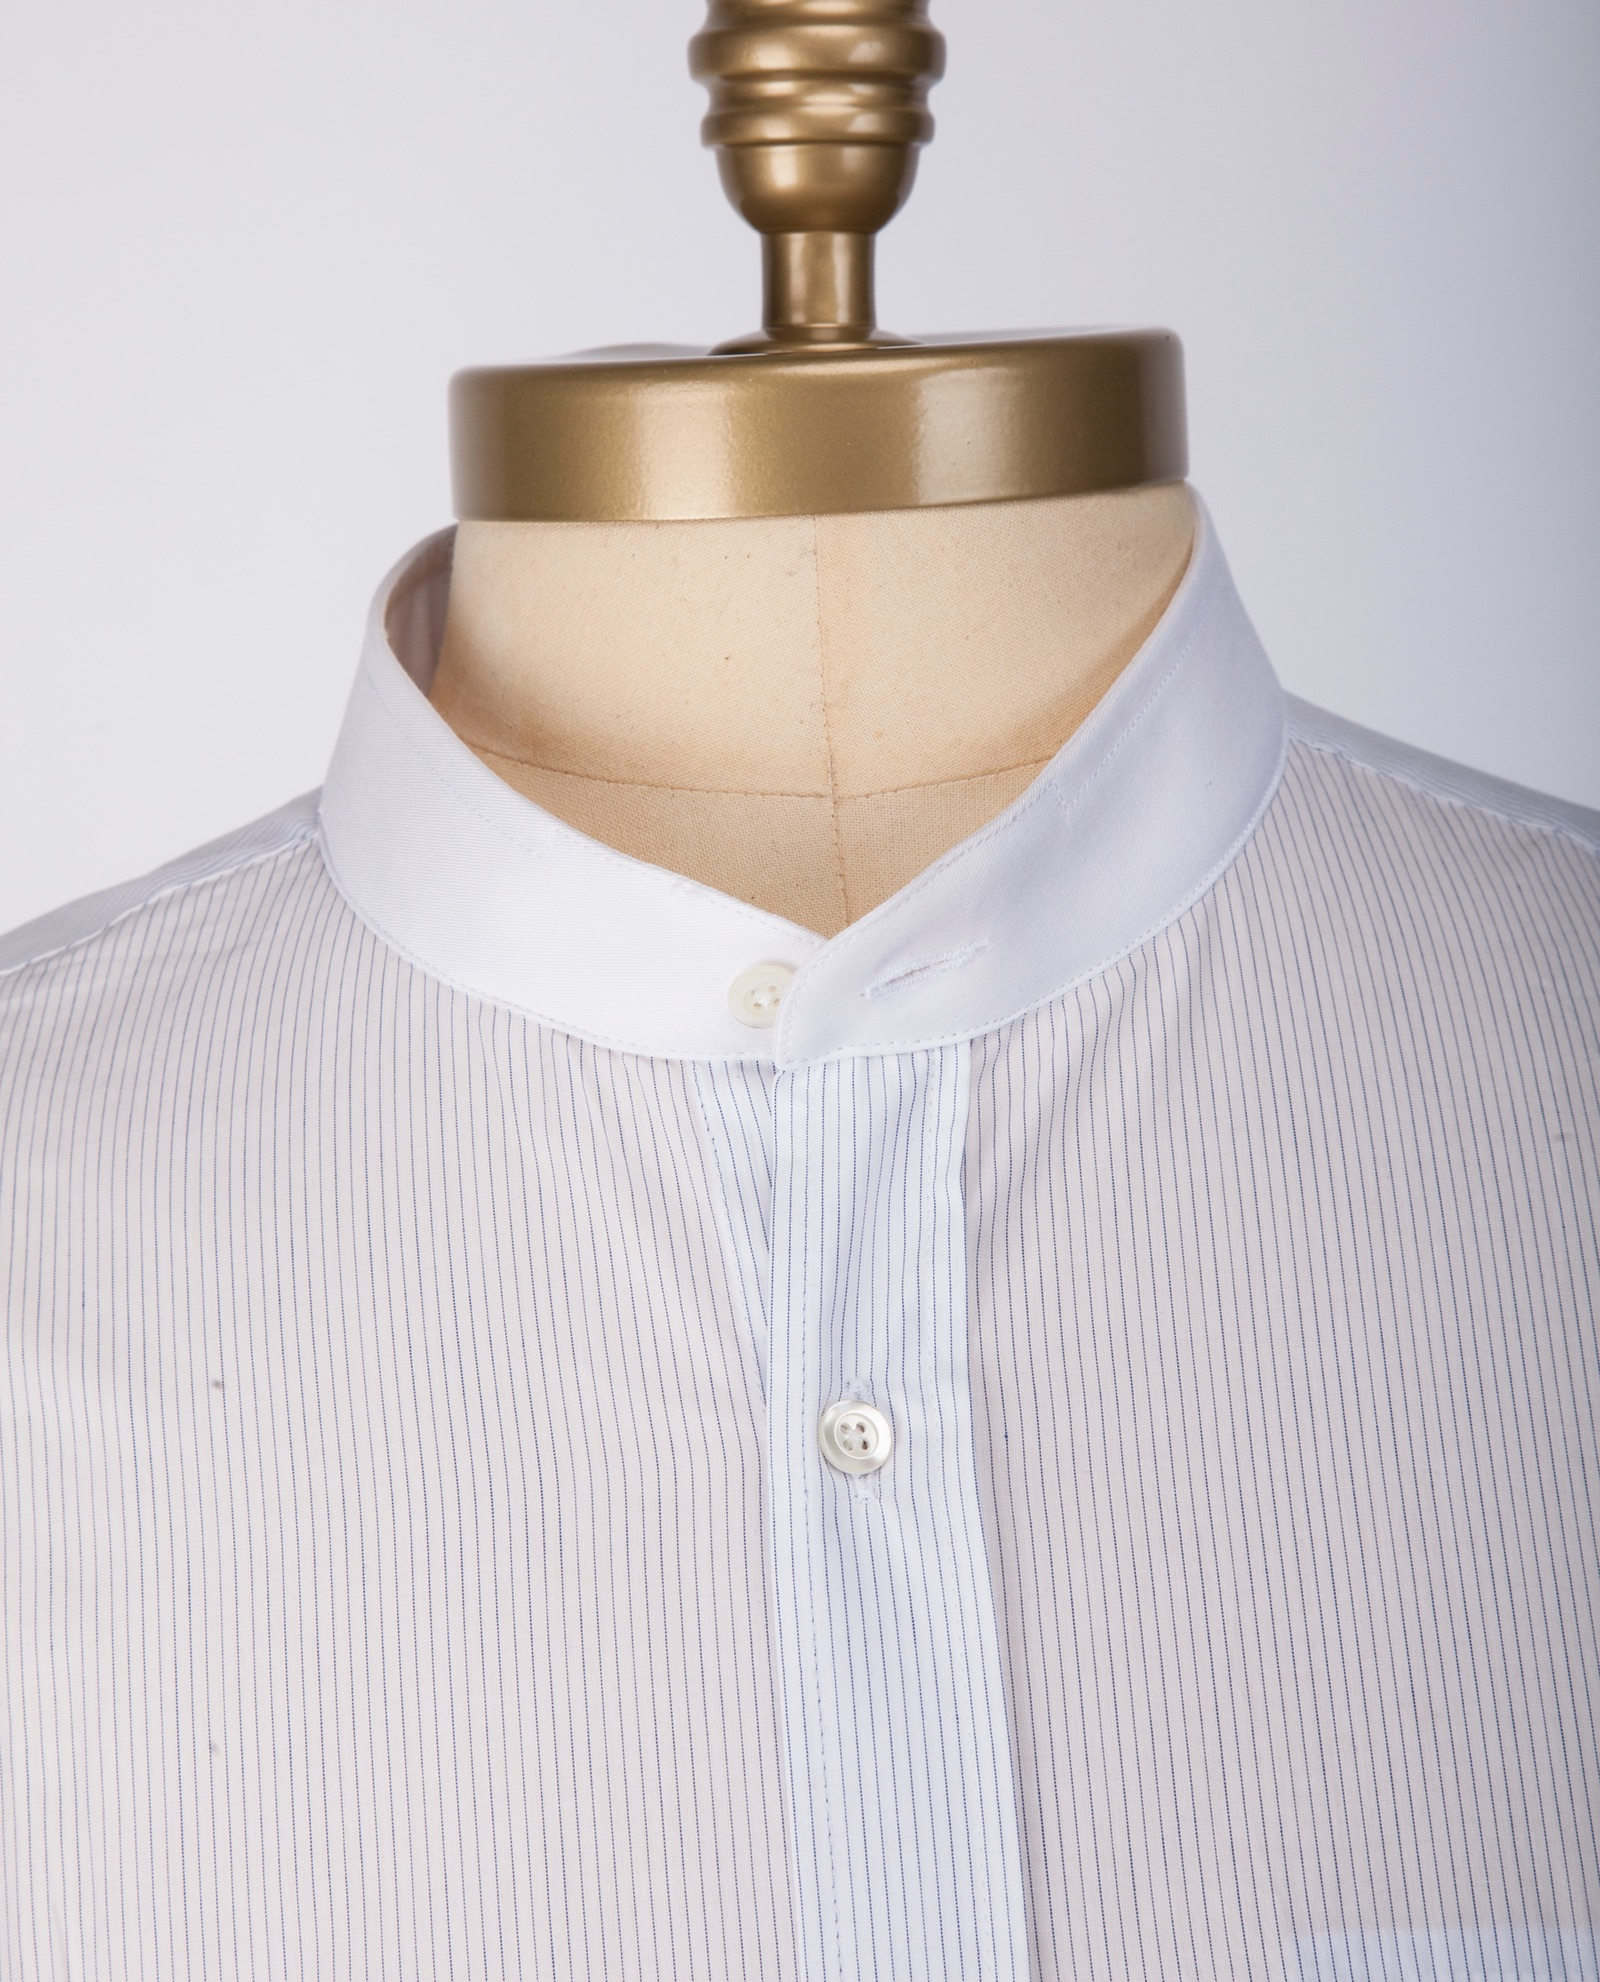 tonsor_cie_chemise_blanche_rayures_col_officier_2